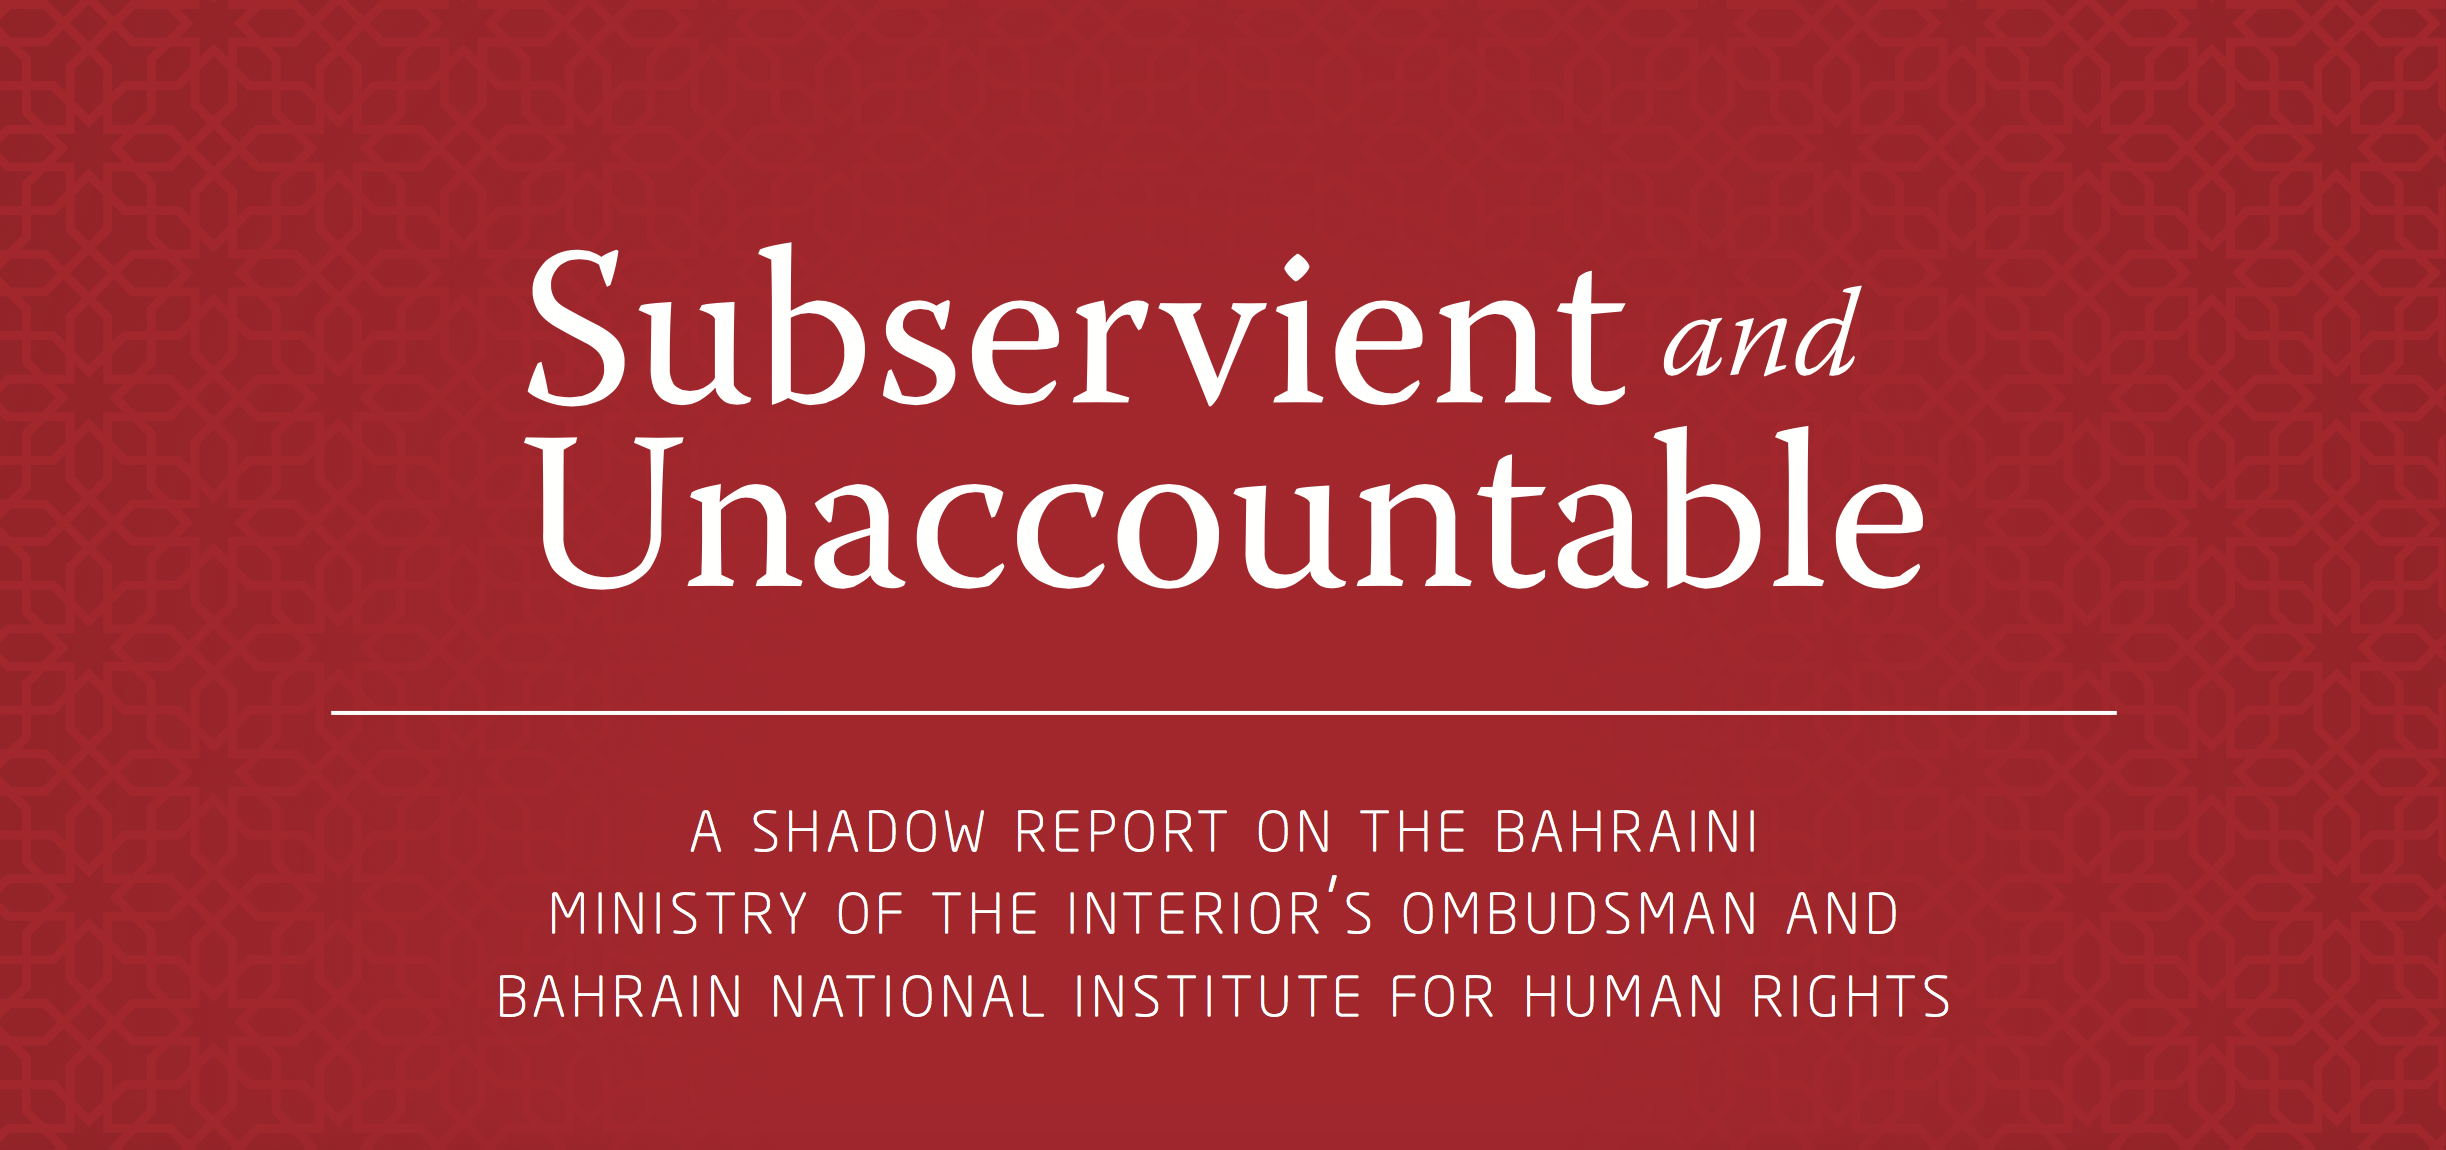 Subservient and Unaccountable: A Shadow Report on the MOI Ombudsman and NIHR